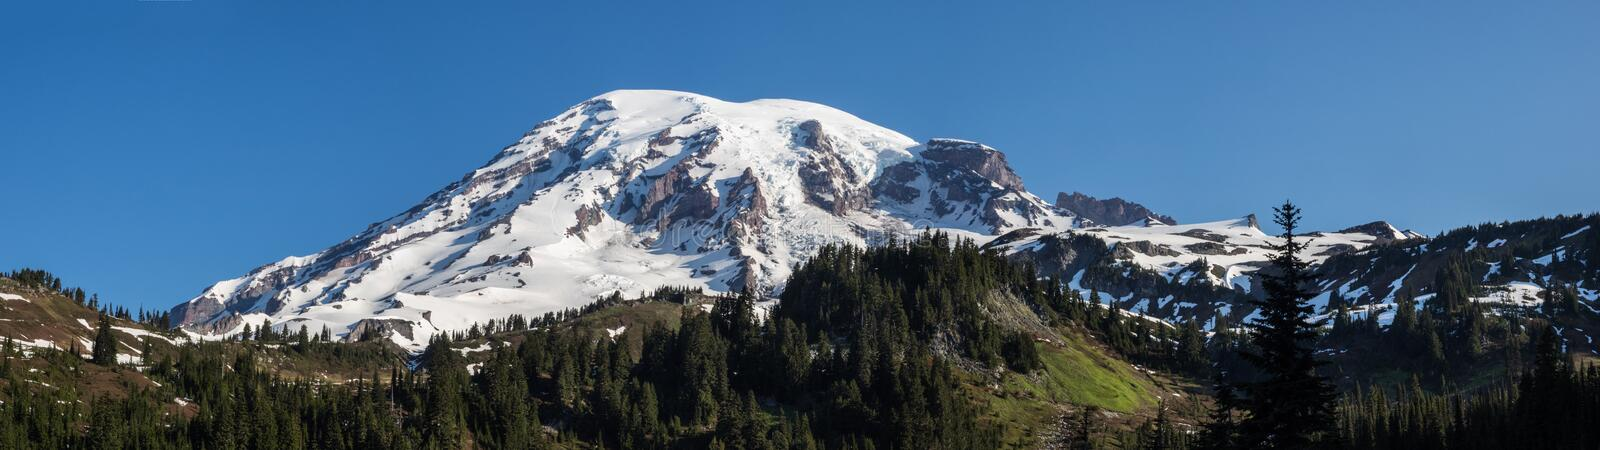 Snow capped Mt. Rainer panorama. Snow and glaciers cap the top of Mt. Rainer in Washington on a sunny morning royalty free stock photo